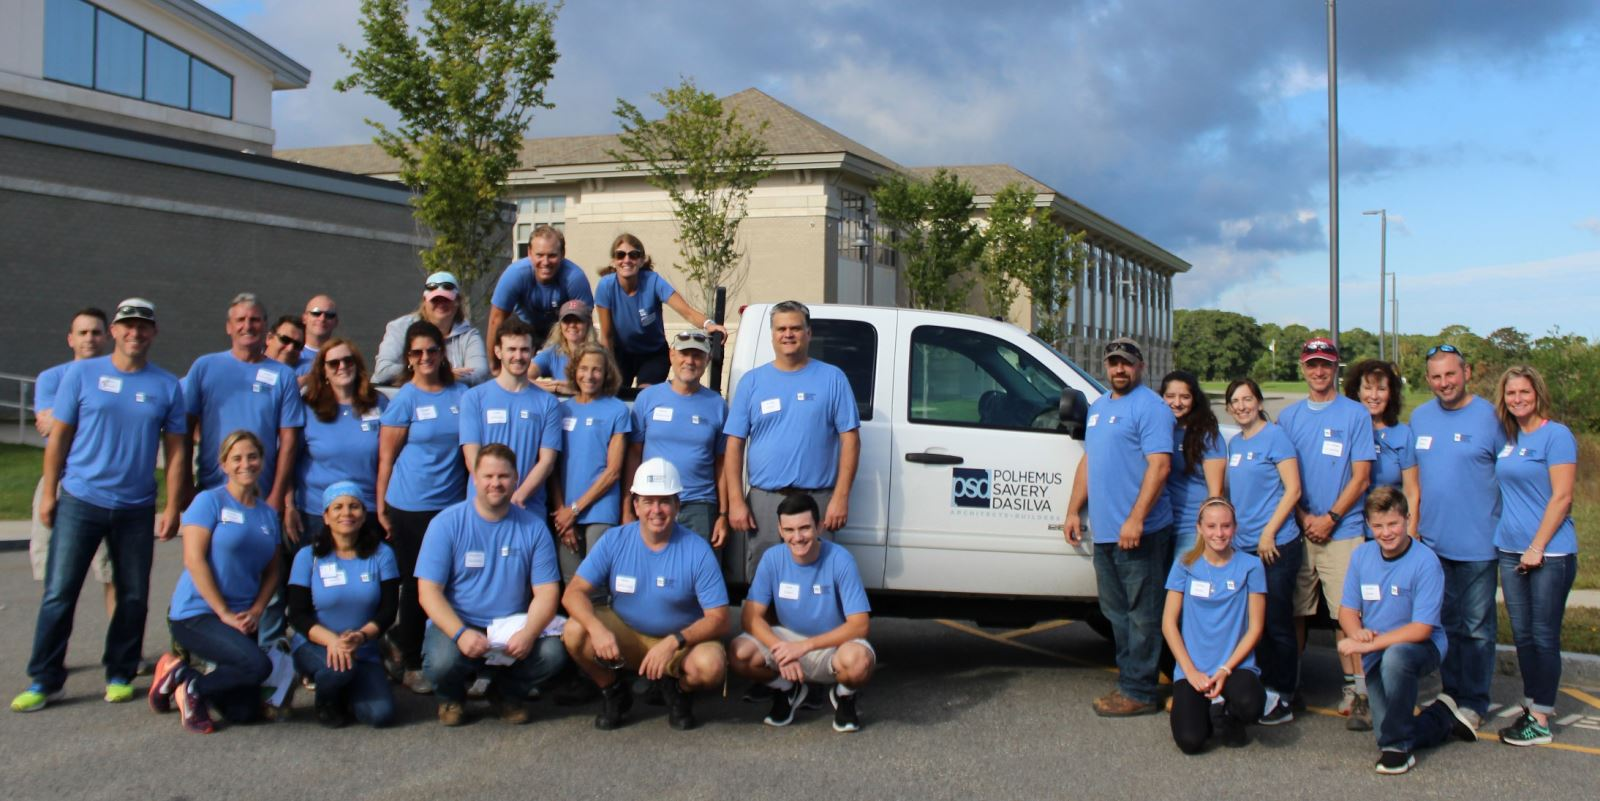 Members of the PSD team who volunteered at the Housing Assistance Corp's annual Big Fix event.